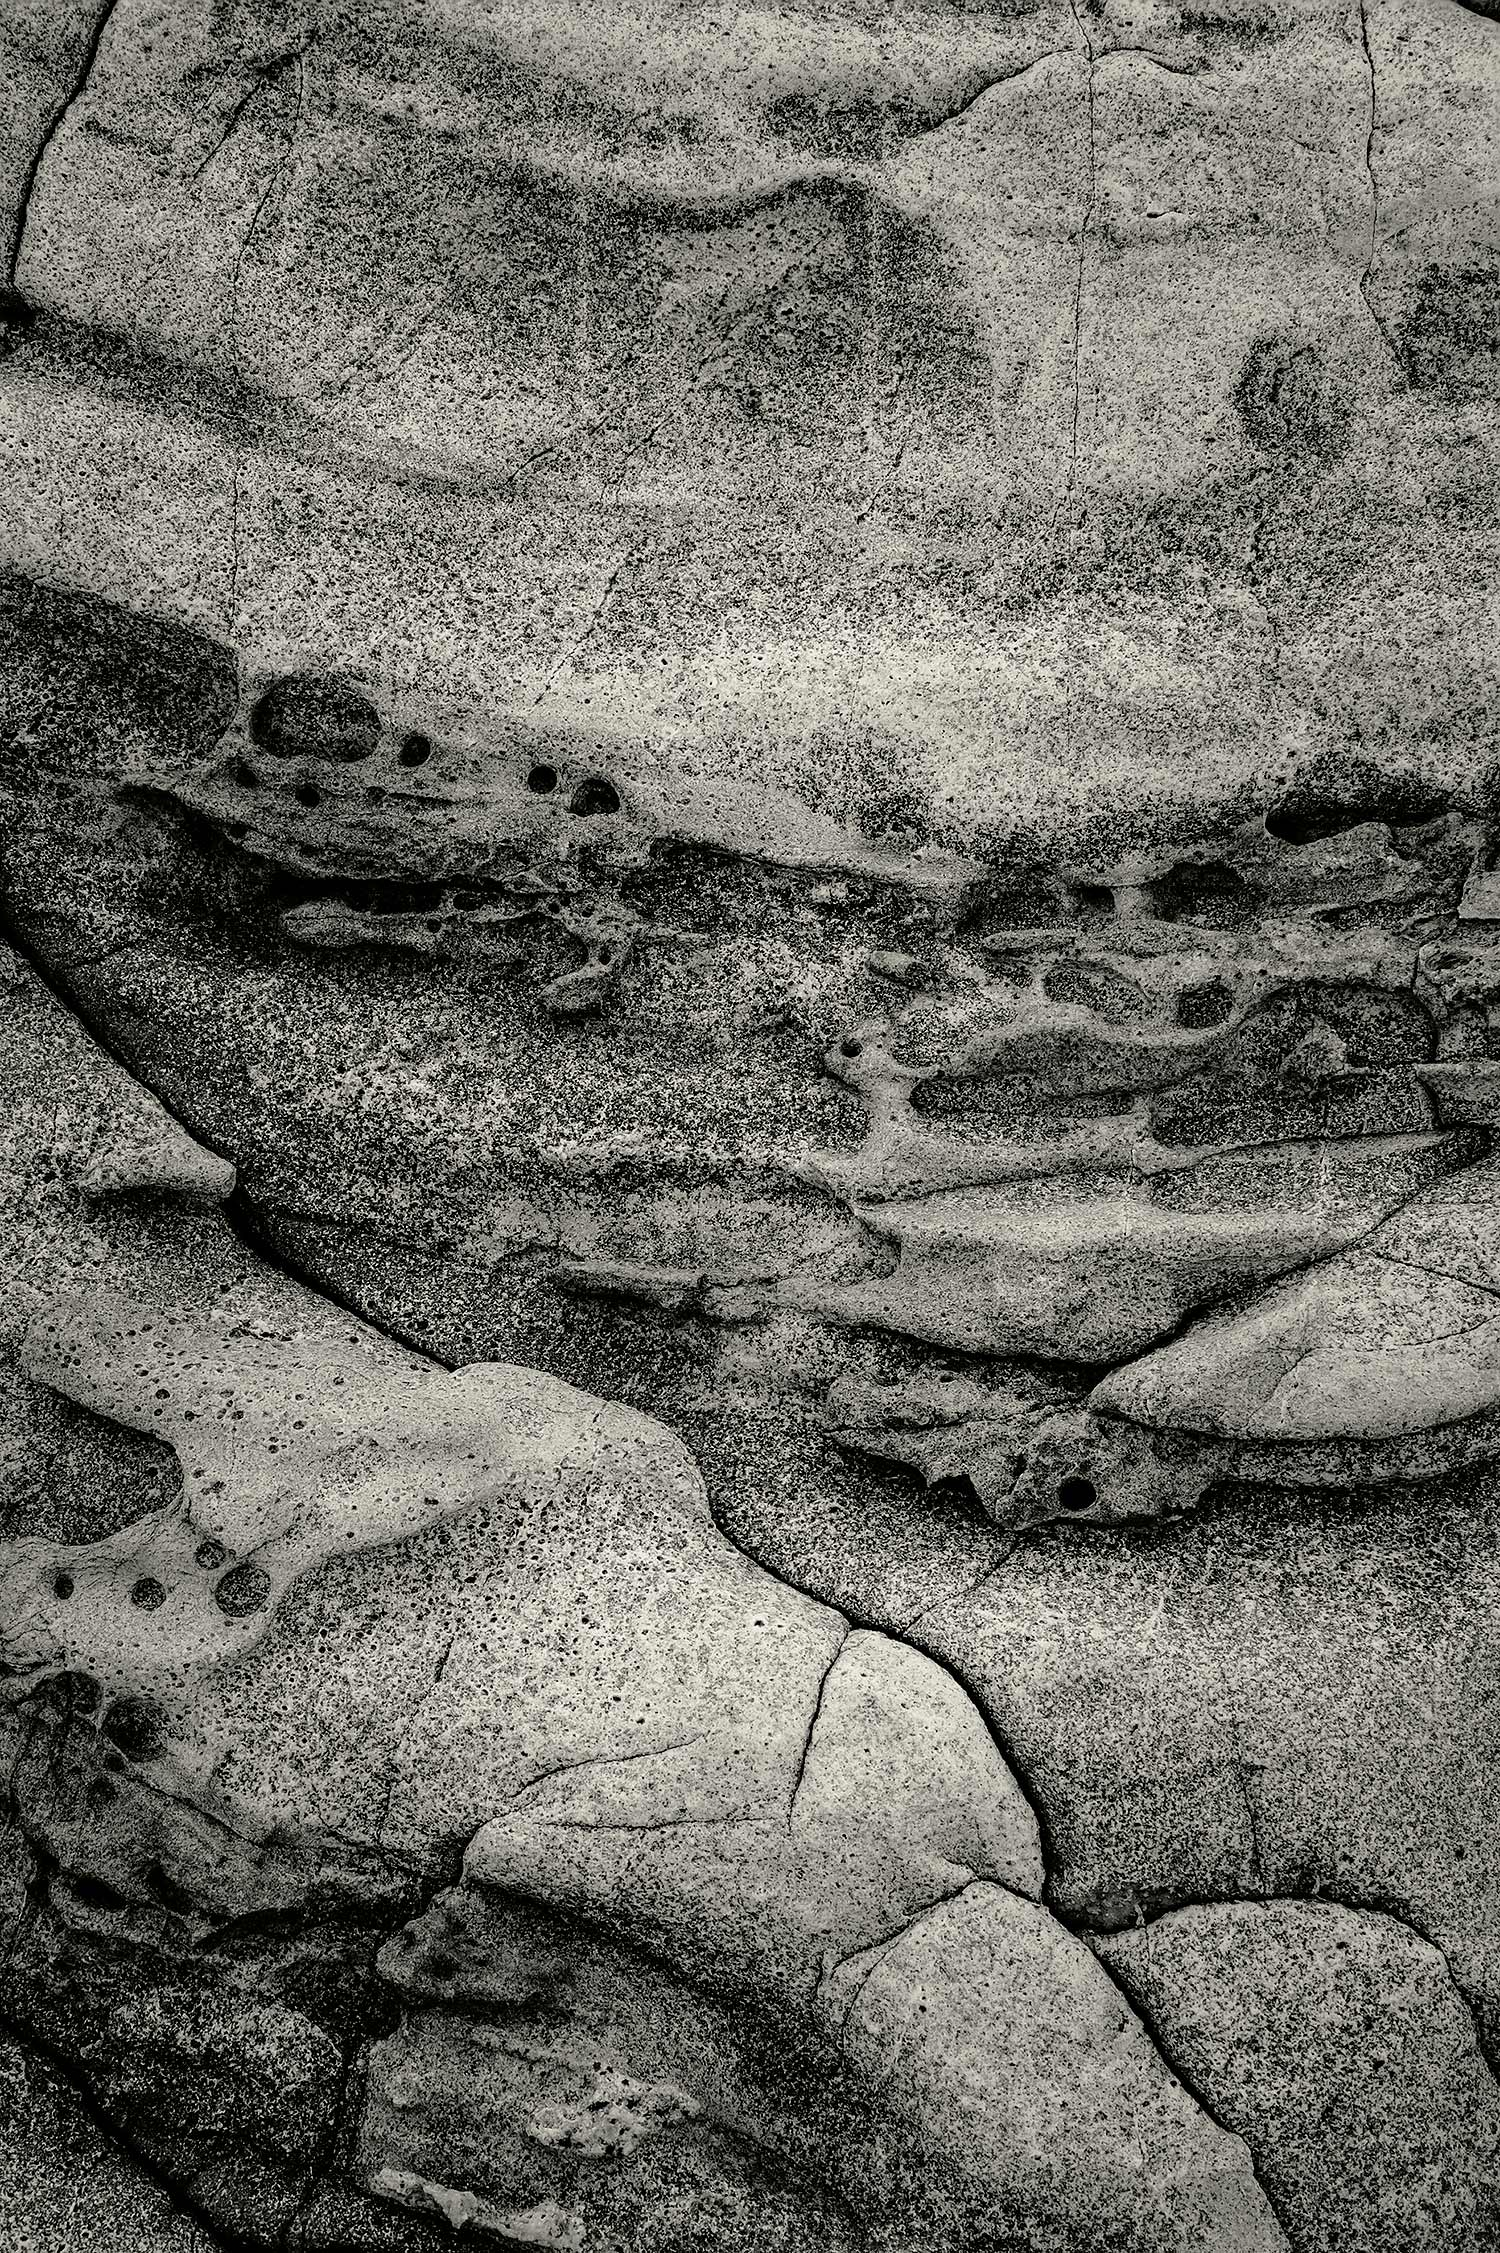 Rocks Near Otter Cliff, Acadia, 2013